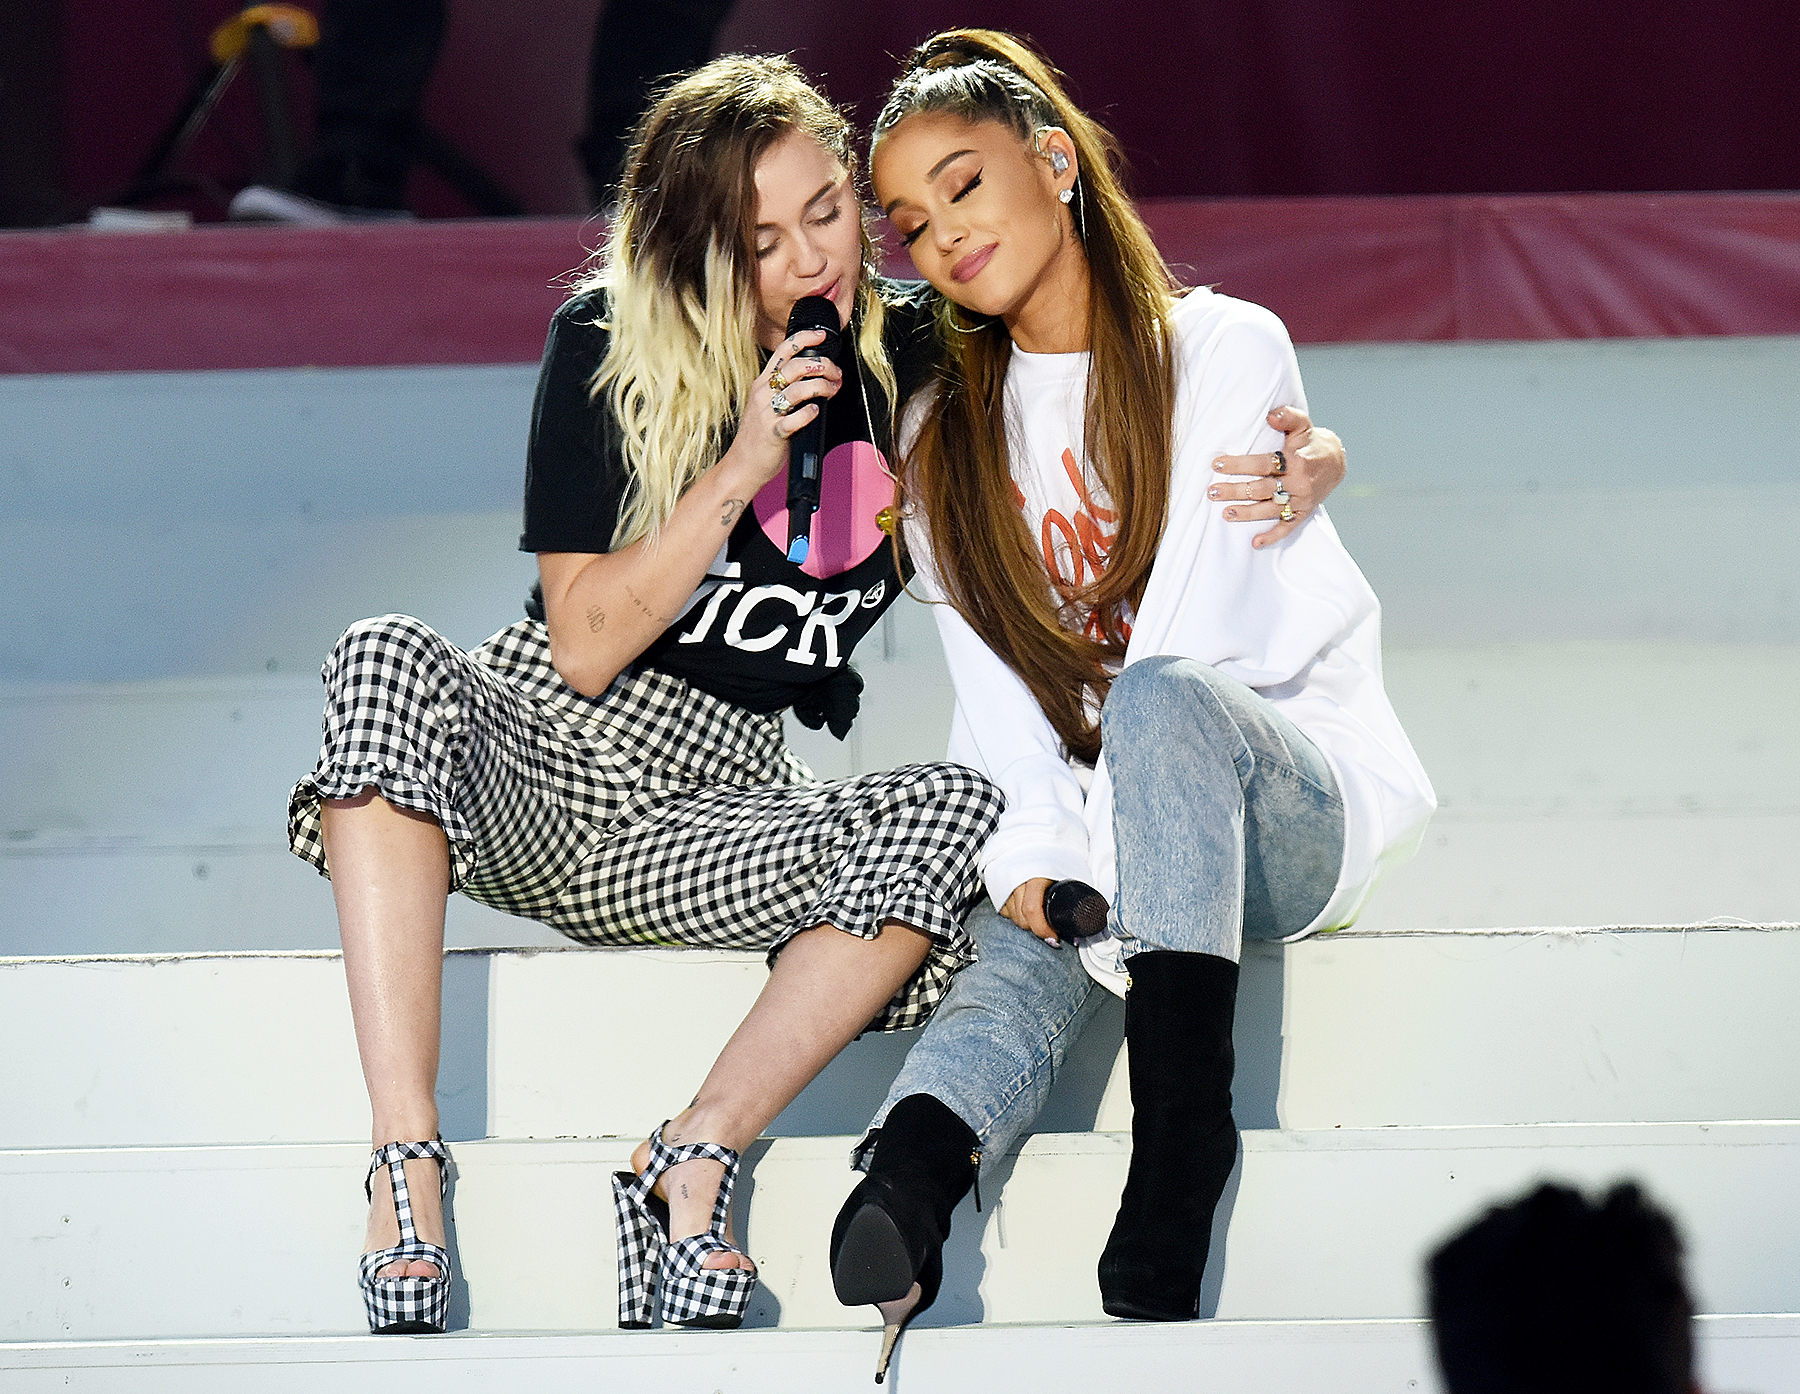 Ariana Grande, Miley Cyrus Duet on 'Don't Dream It's Over' at Manchester Concert